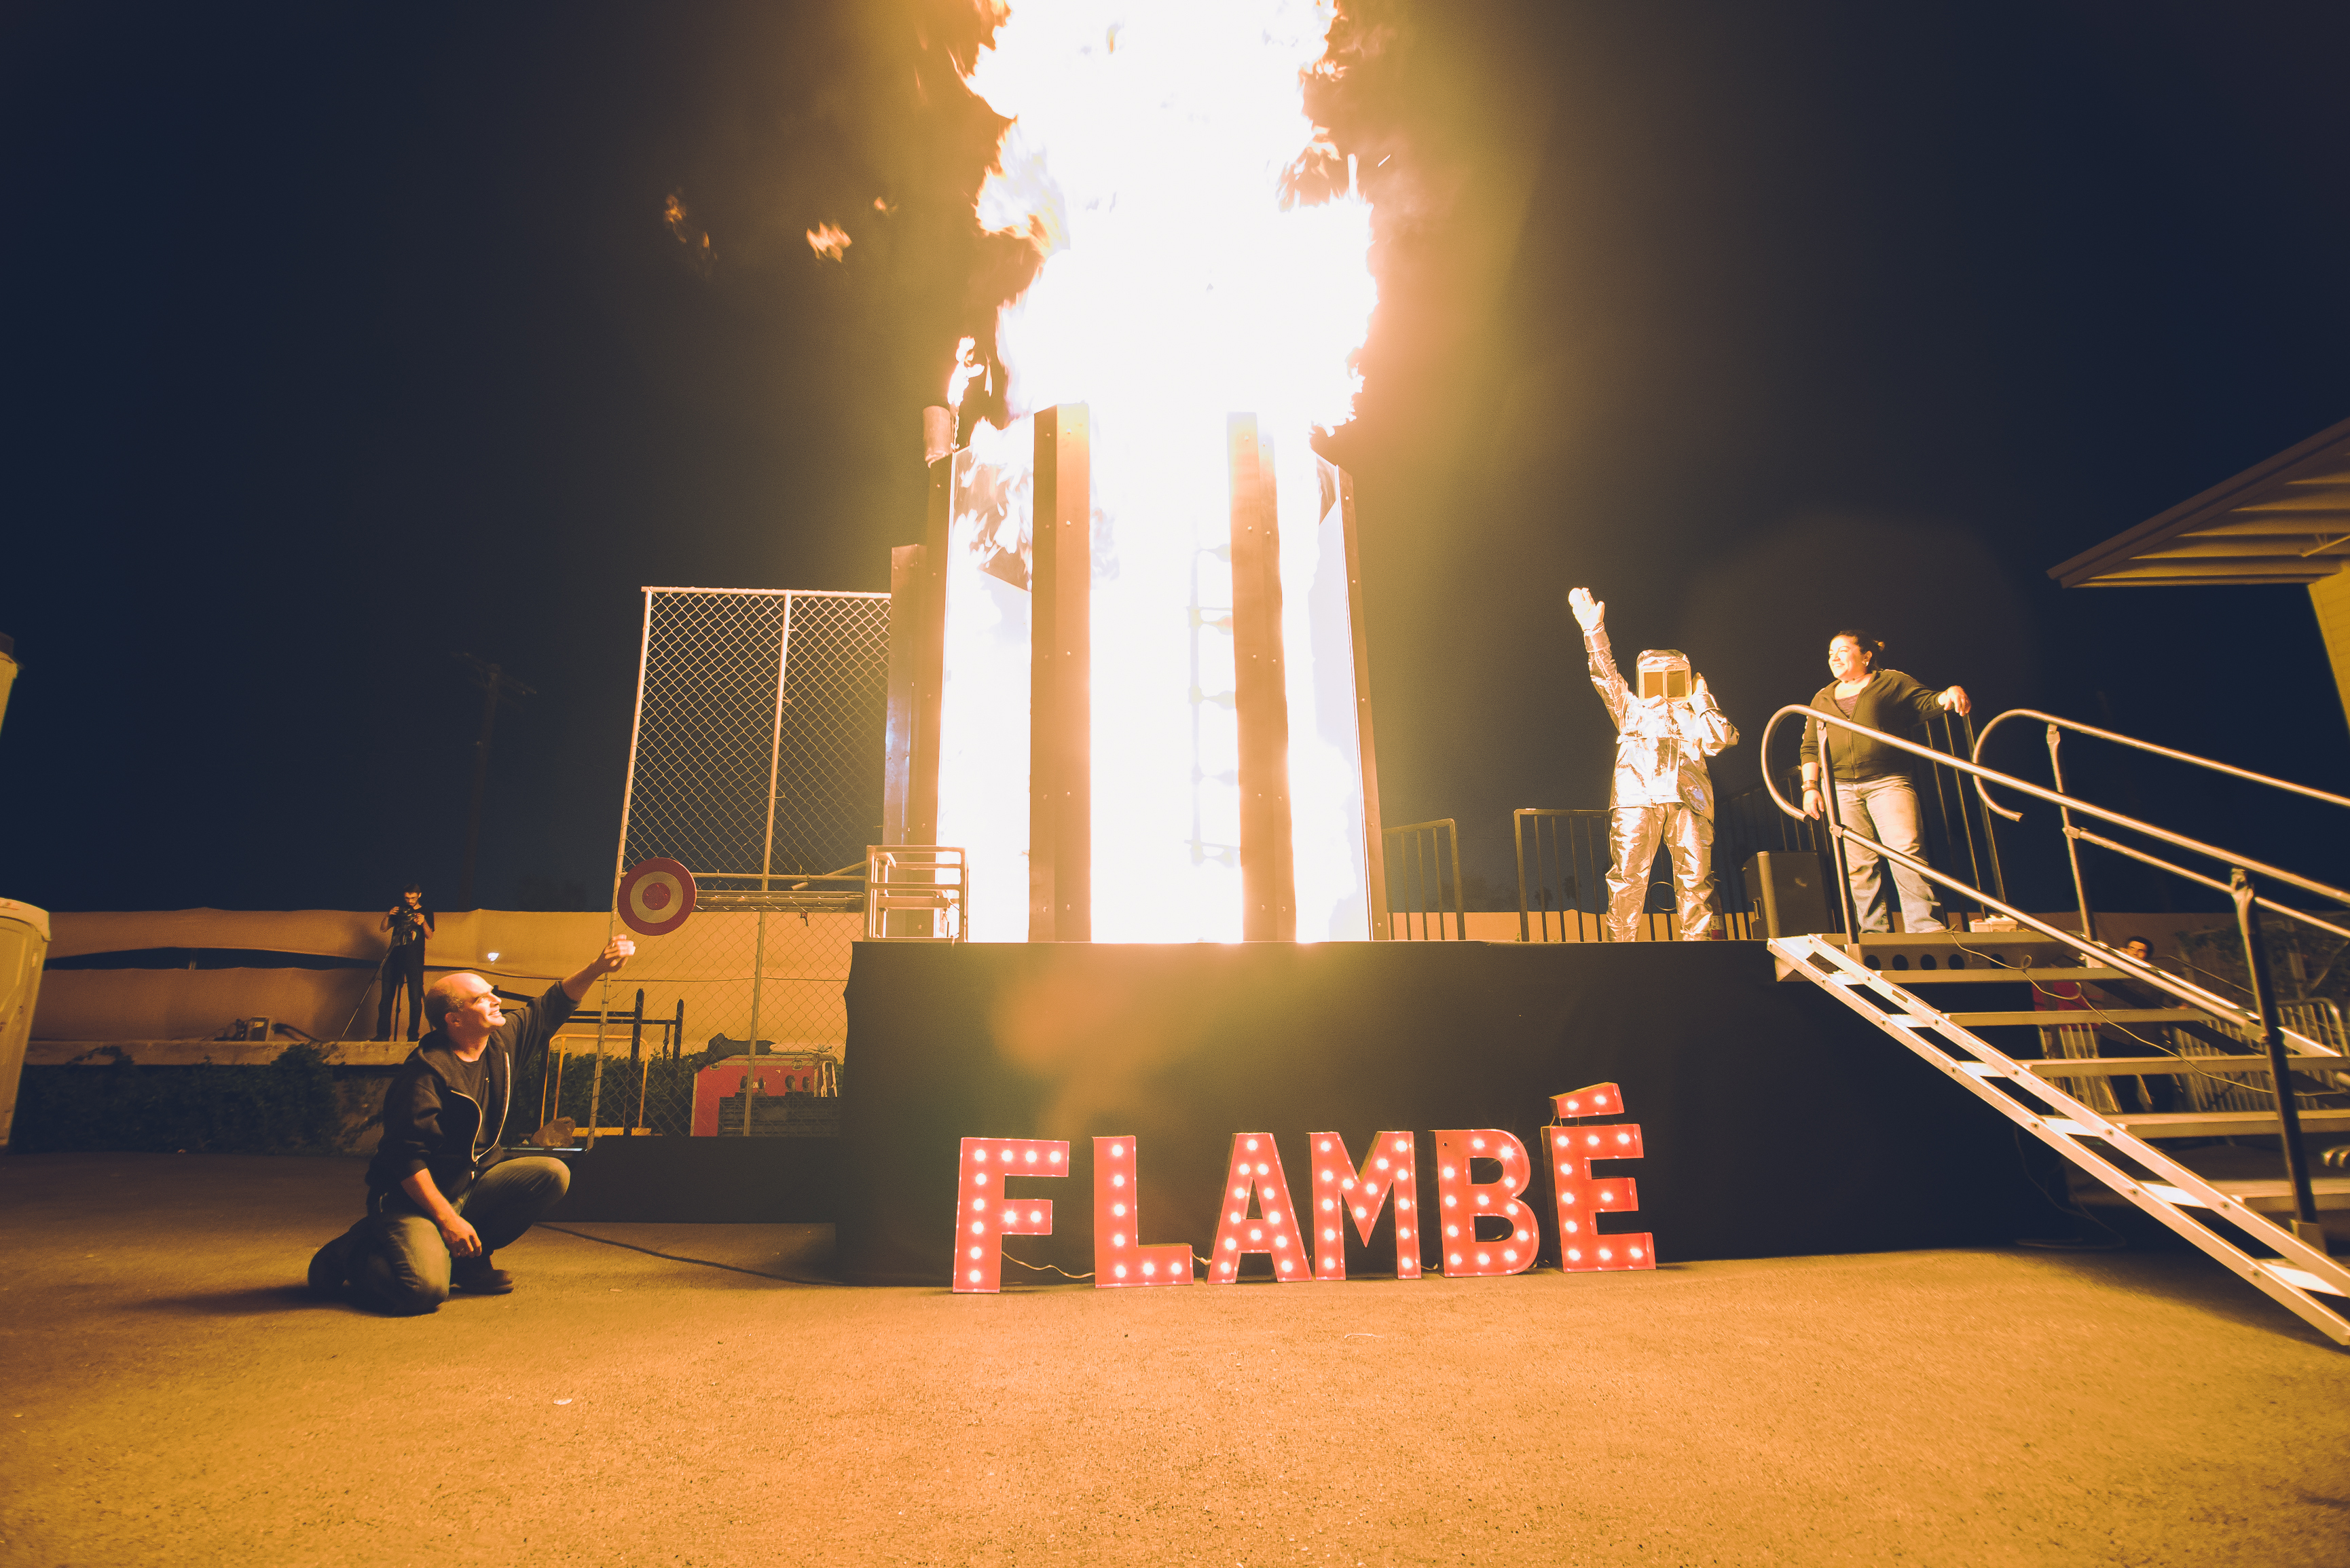 Dunk Tank Flambe. STEAM Carnival, Two Bit Circus (Photo: Business Wire)